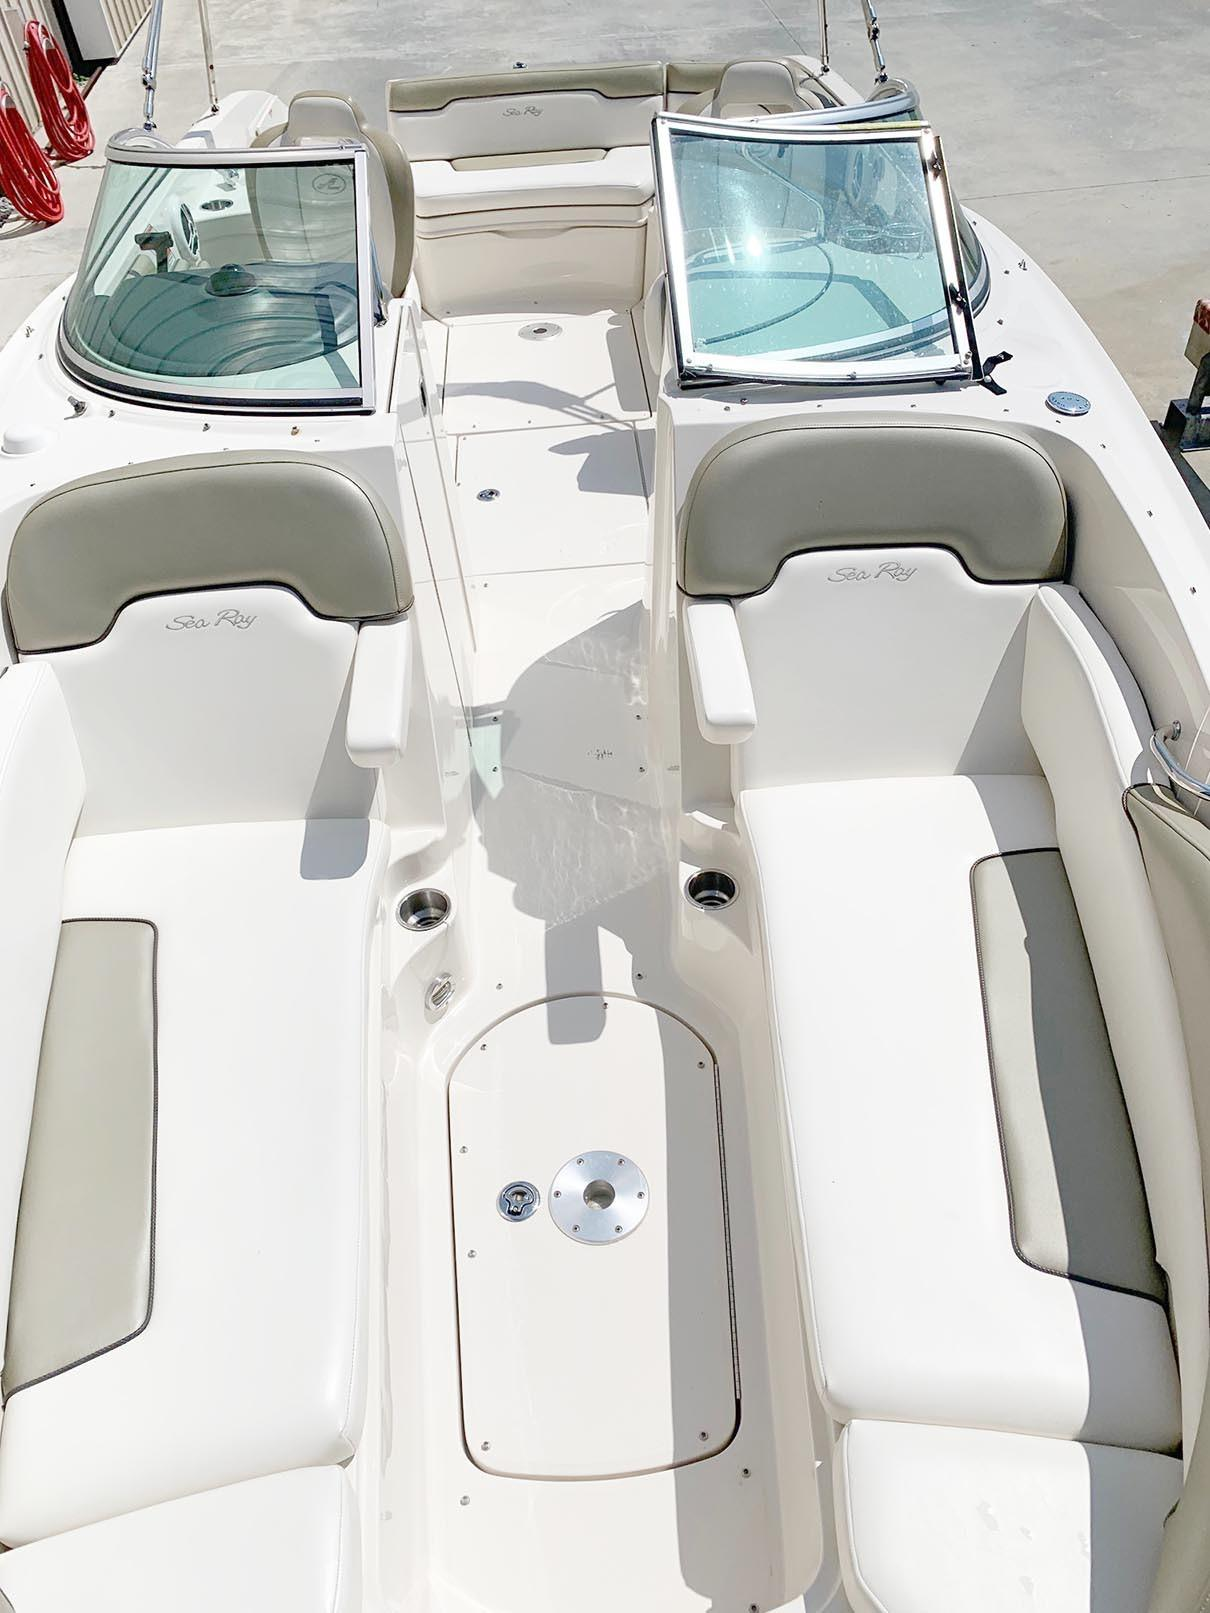 Sea Ray 260 Sundeck - Boat from Bow